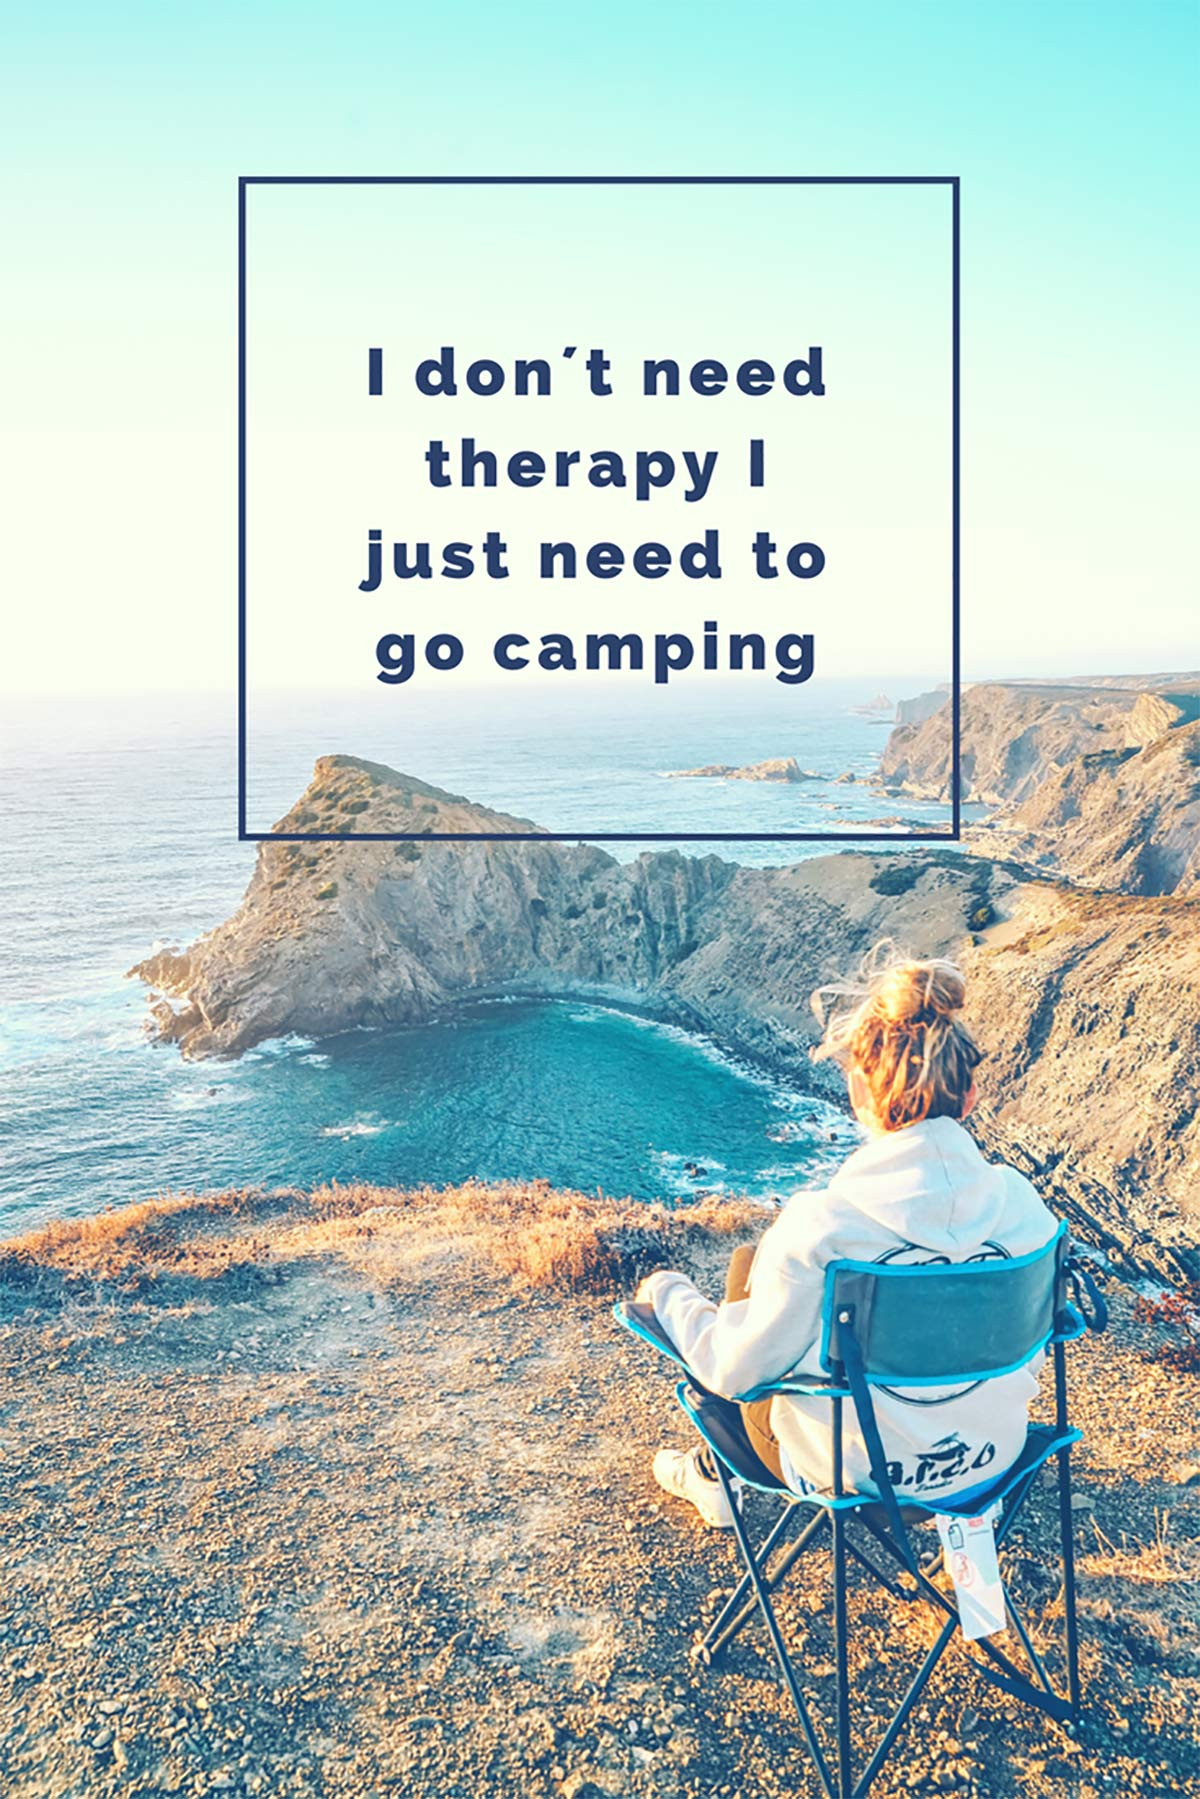 I don't need therapy. I just need to go camping.